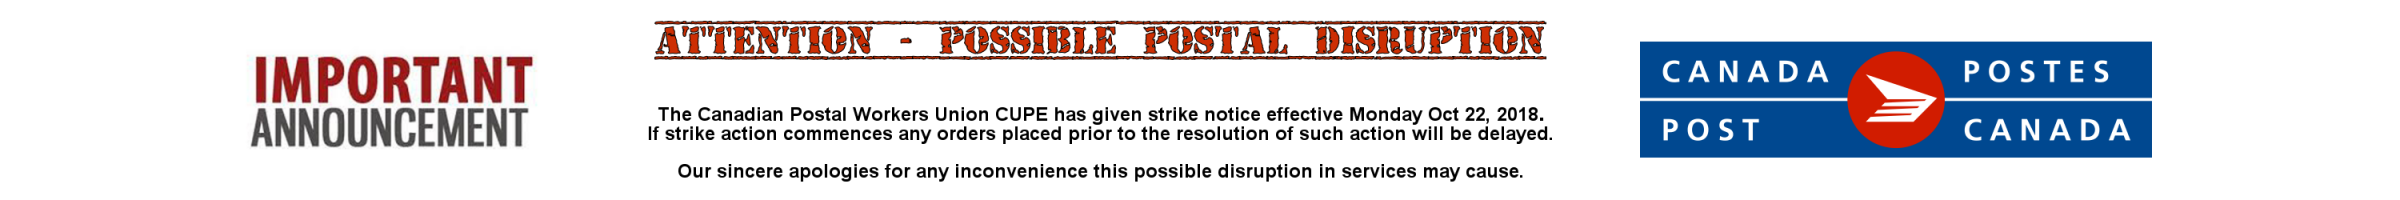 Postal Service Disruption